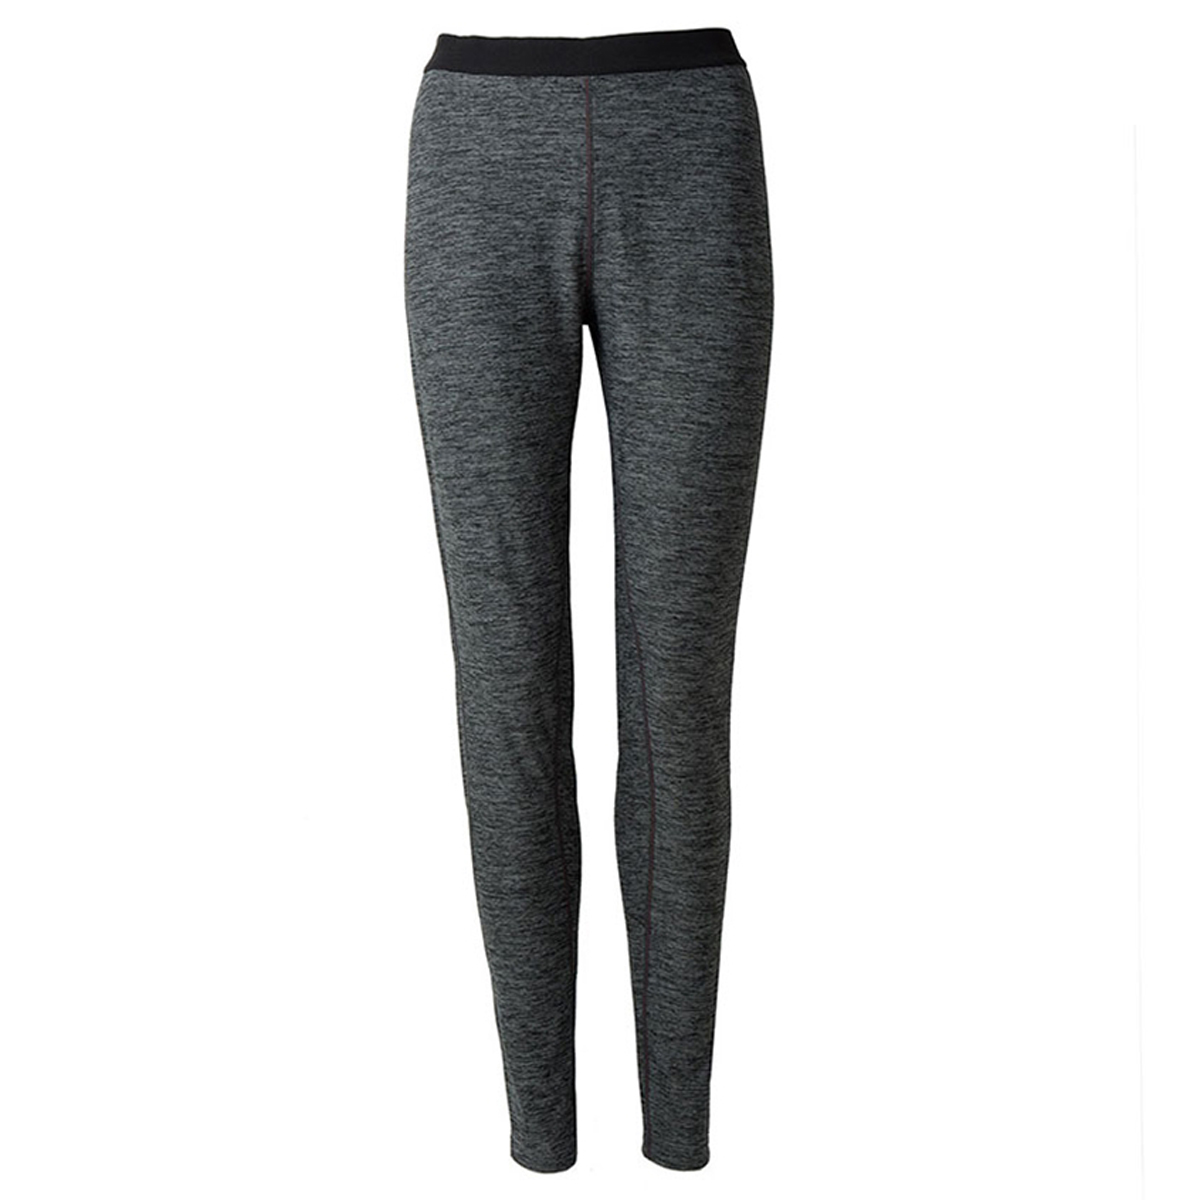 GILL WOMENS BASE LAYER LEGGINGS (1283W)